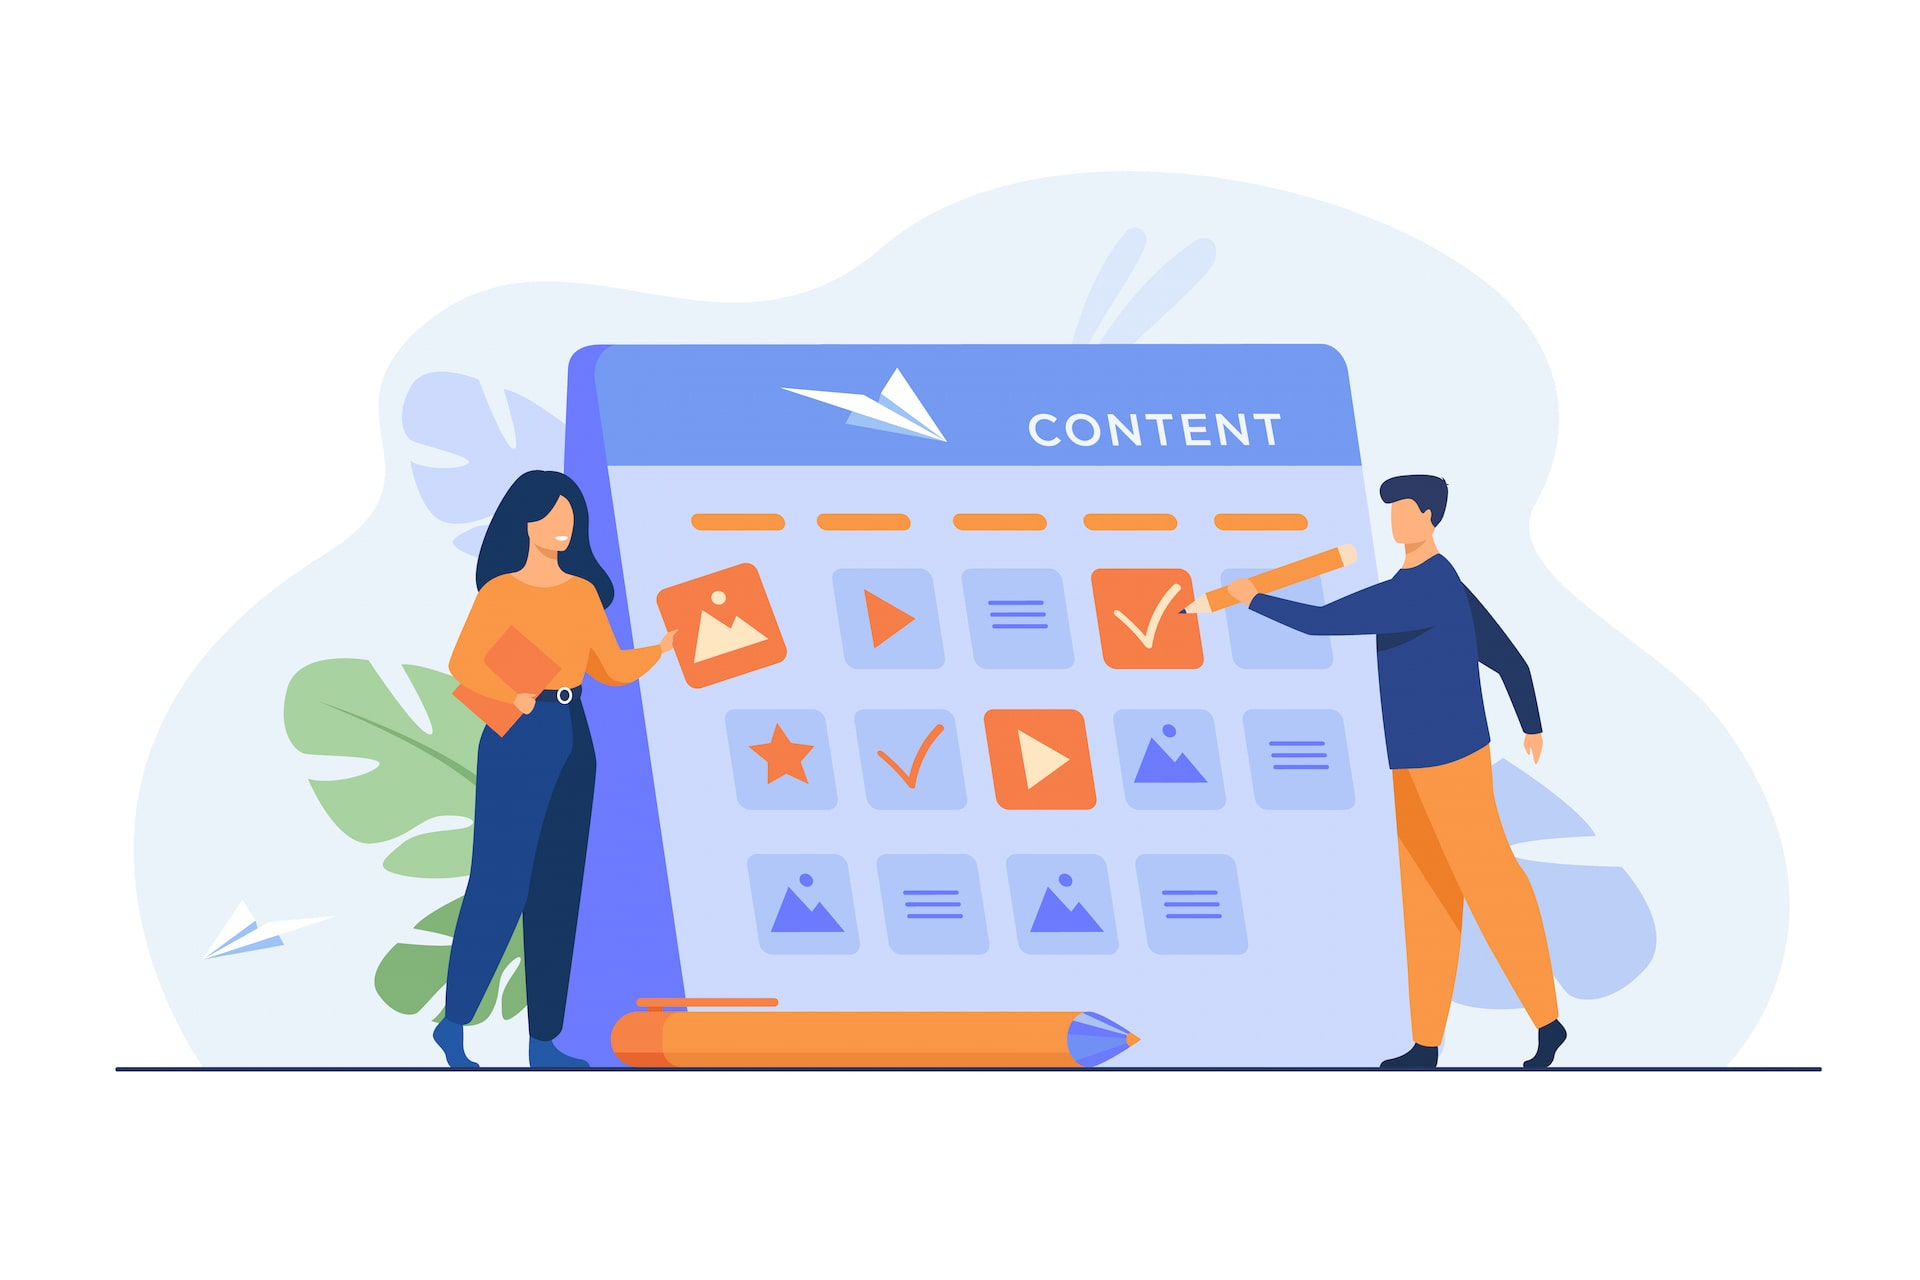 seo tutorial, SEO Tutorial: All You Need to Know in 2021 [Insights & Trends]  SEO Tutorial: All You Need to Know in 2021 [Insights & Trends] content